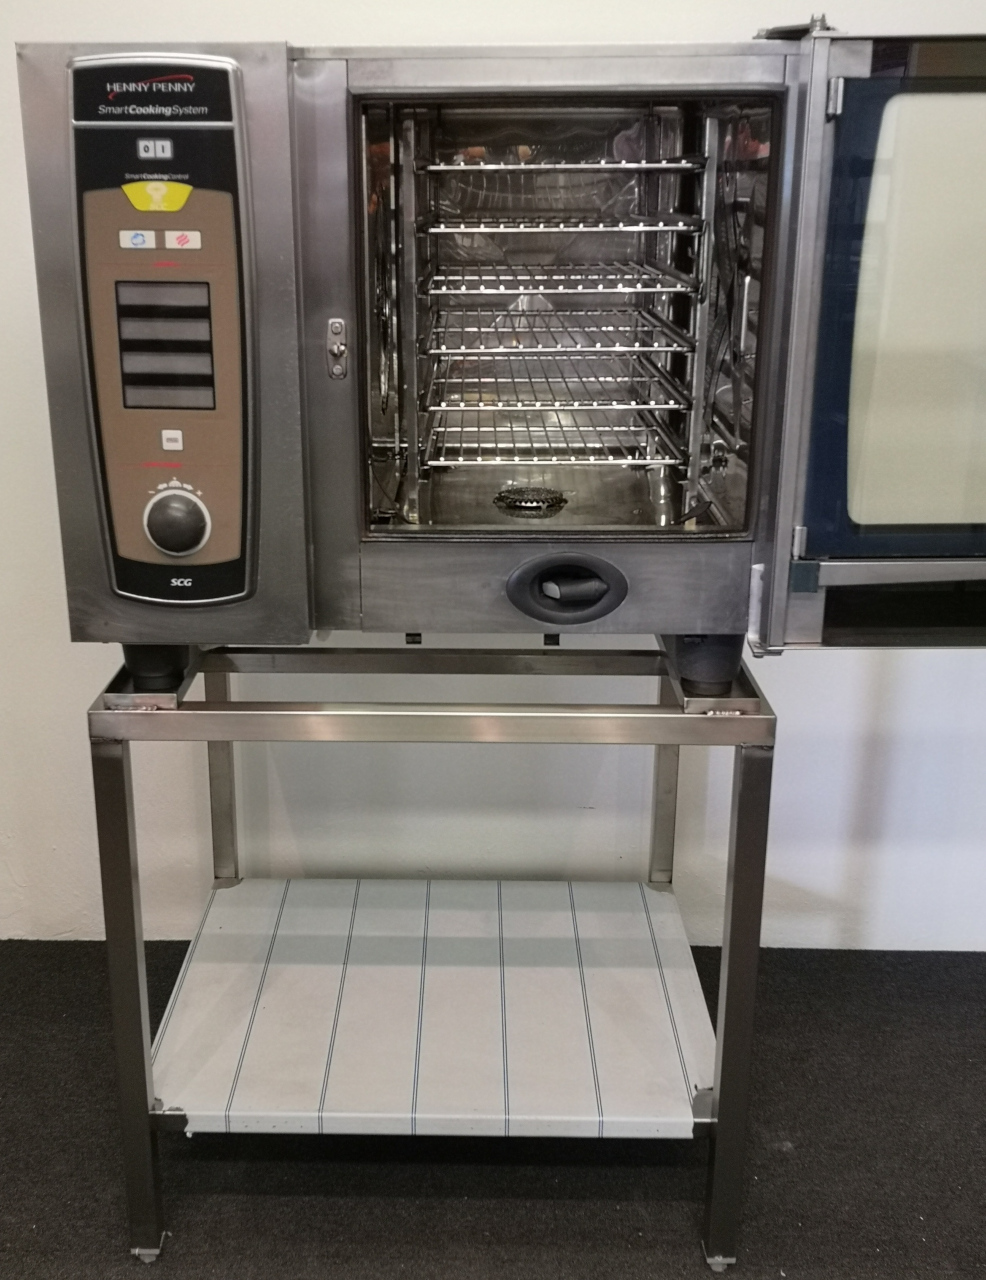 henny penny combi oven manual